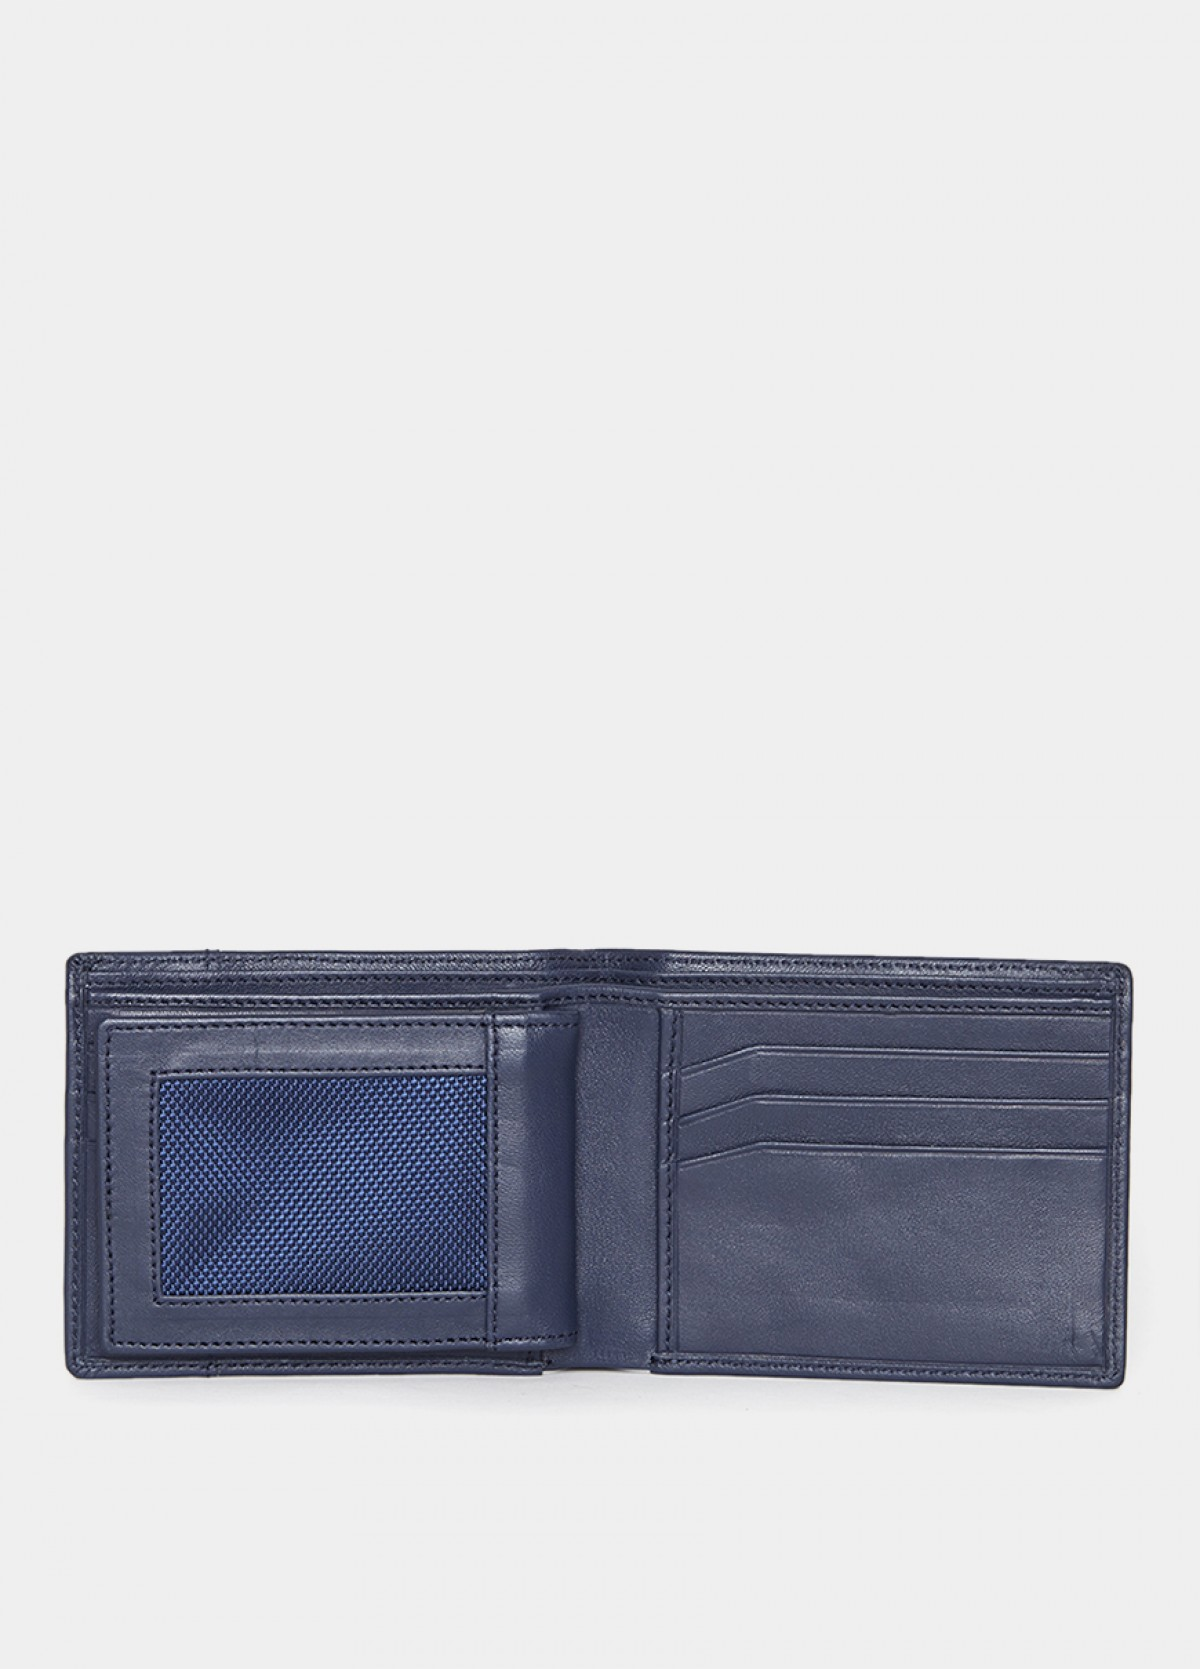 The Him & The City Men'S Bi Fold Wallet With Cc Insert Navy